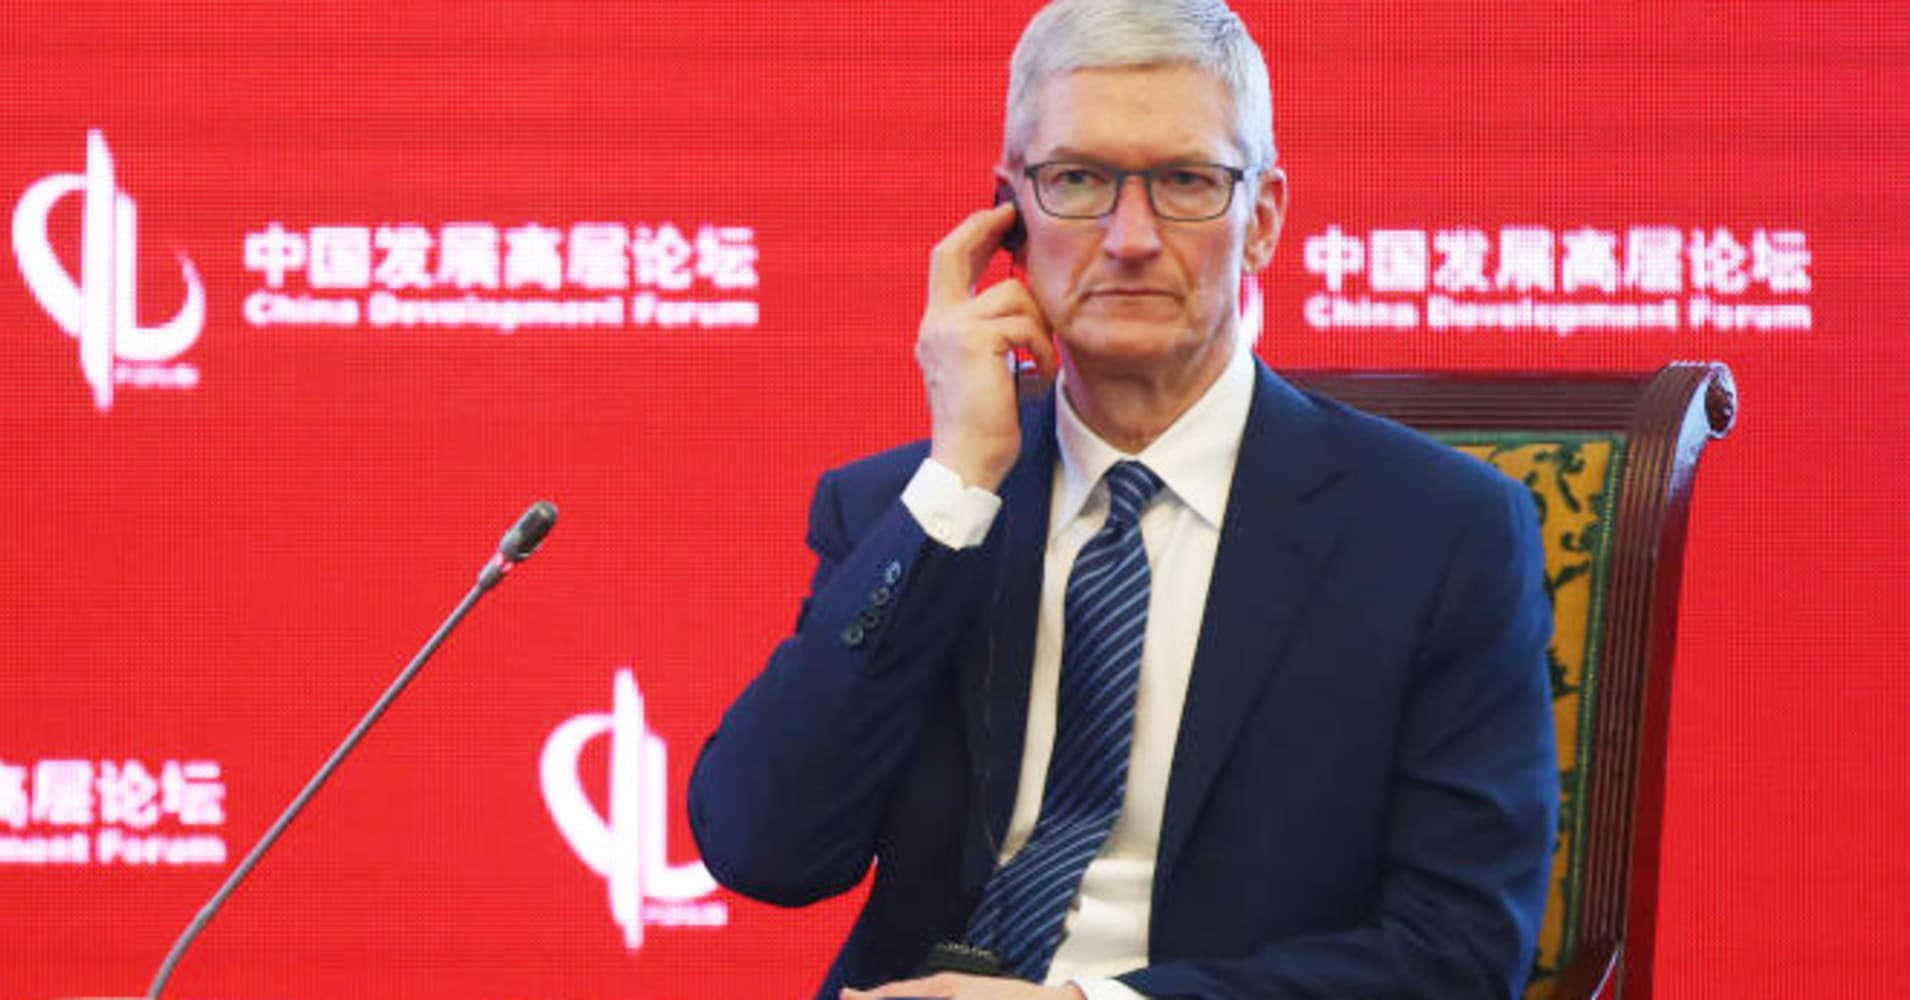 Tim Cook says he isn't worried about traveling to China after the Huawei CFO's arrest